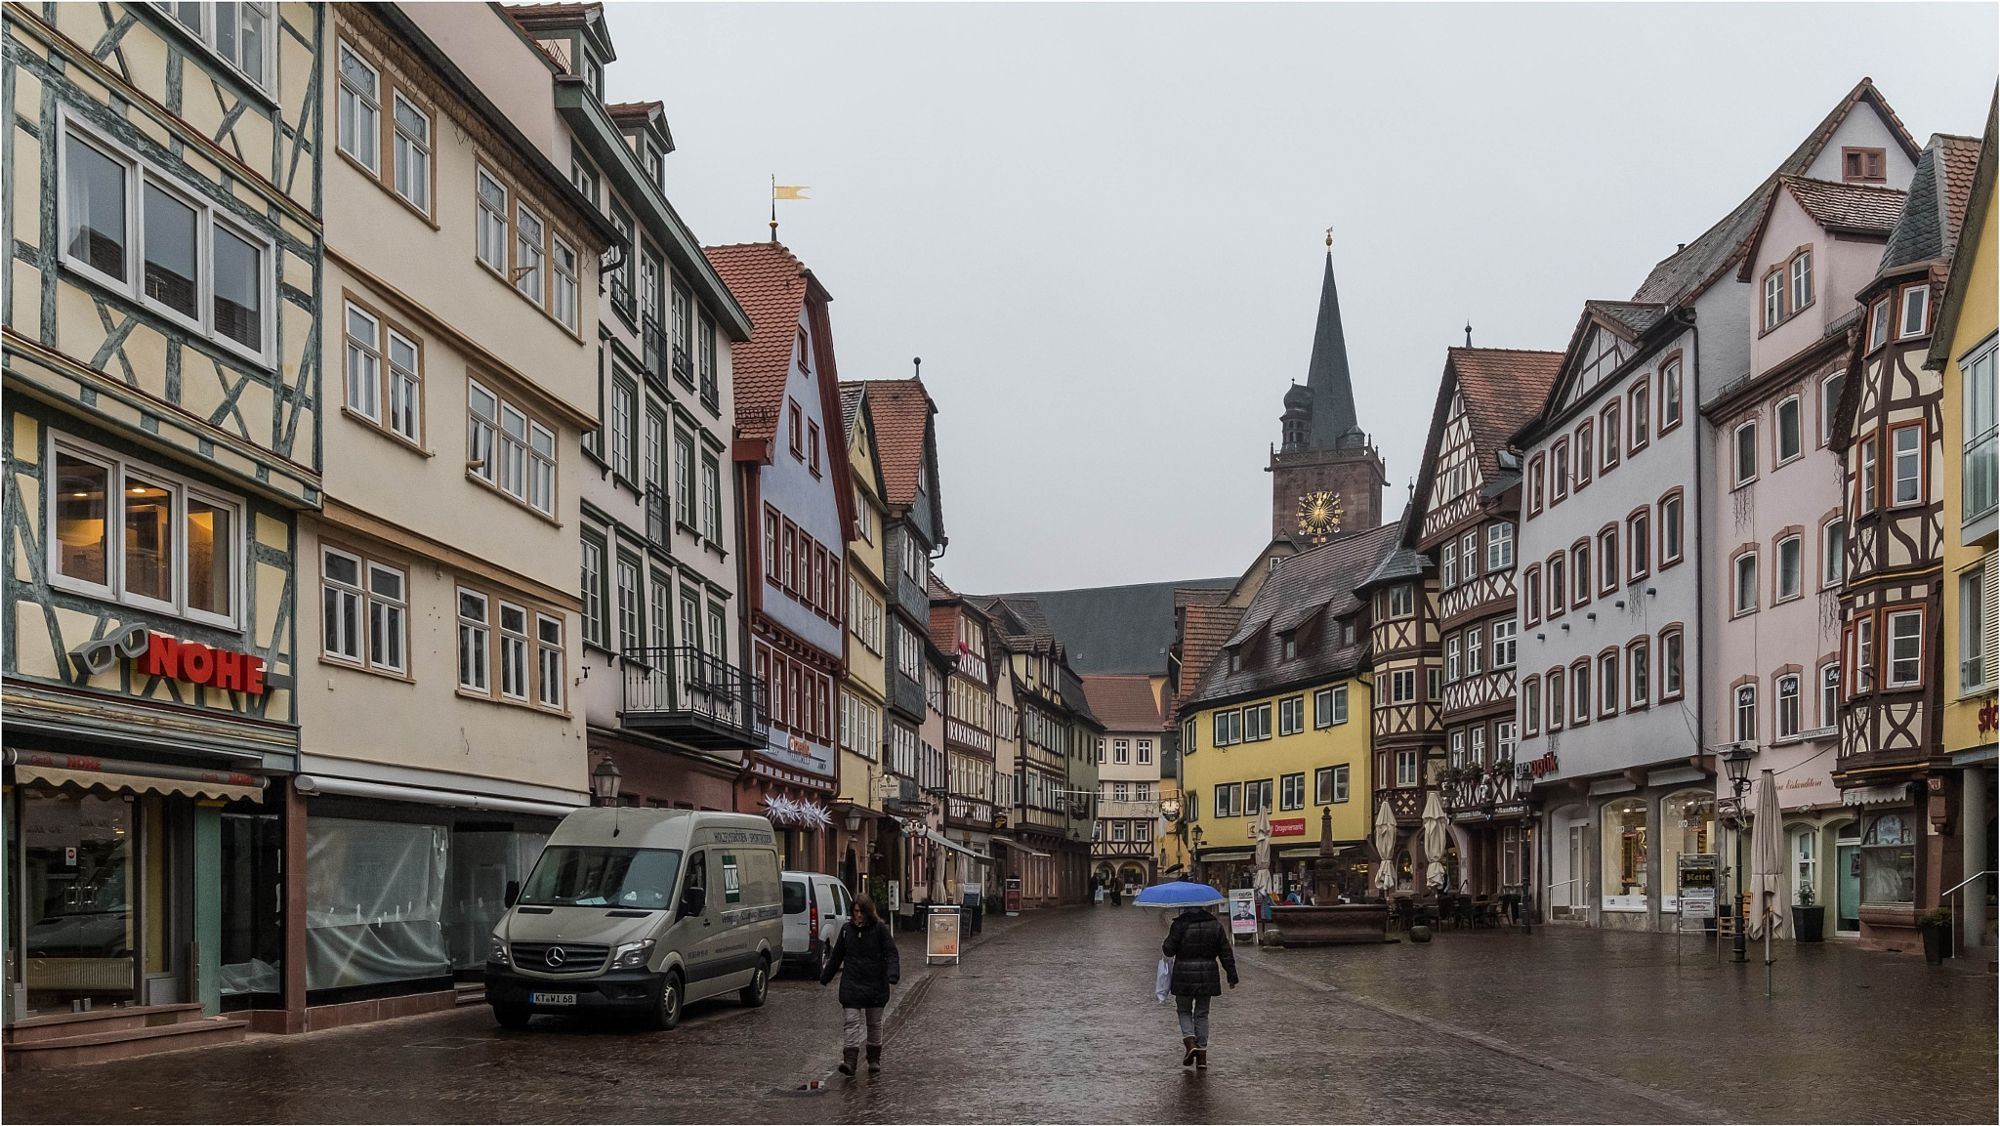 Street Photography : City Centre Wertheim am Main by quadrat_a https://t.co/qvVQhx6iTQ | #streets #photography #ph  #photography